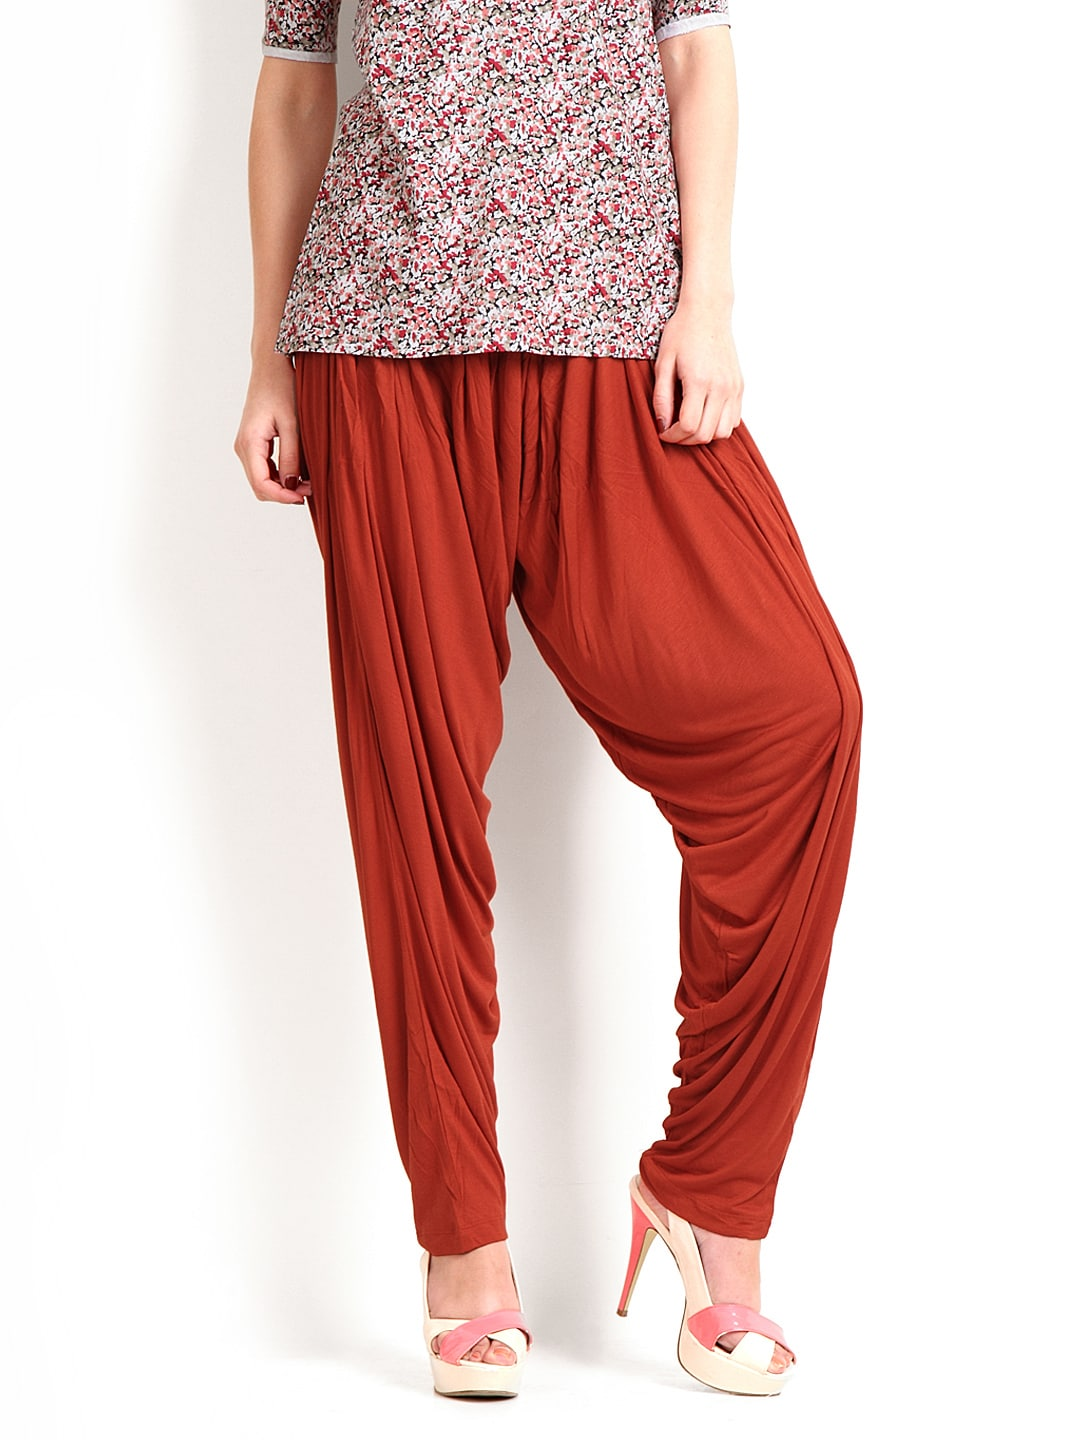 Go Colors 5297 Women Rust Orange Jersey Patiala Pants Price In India